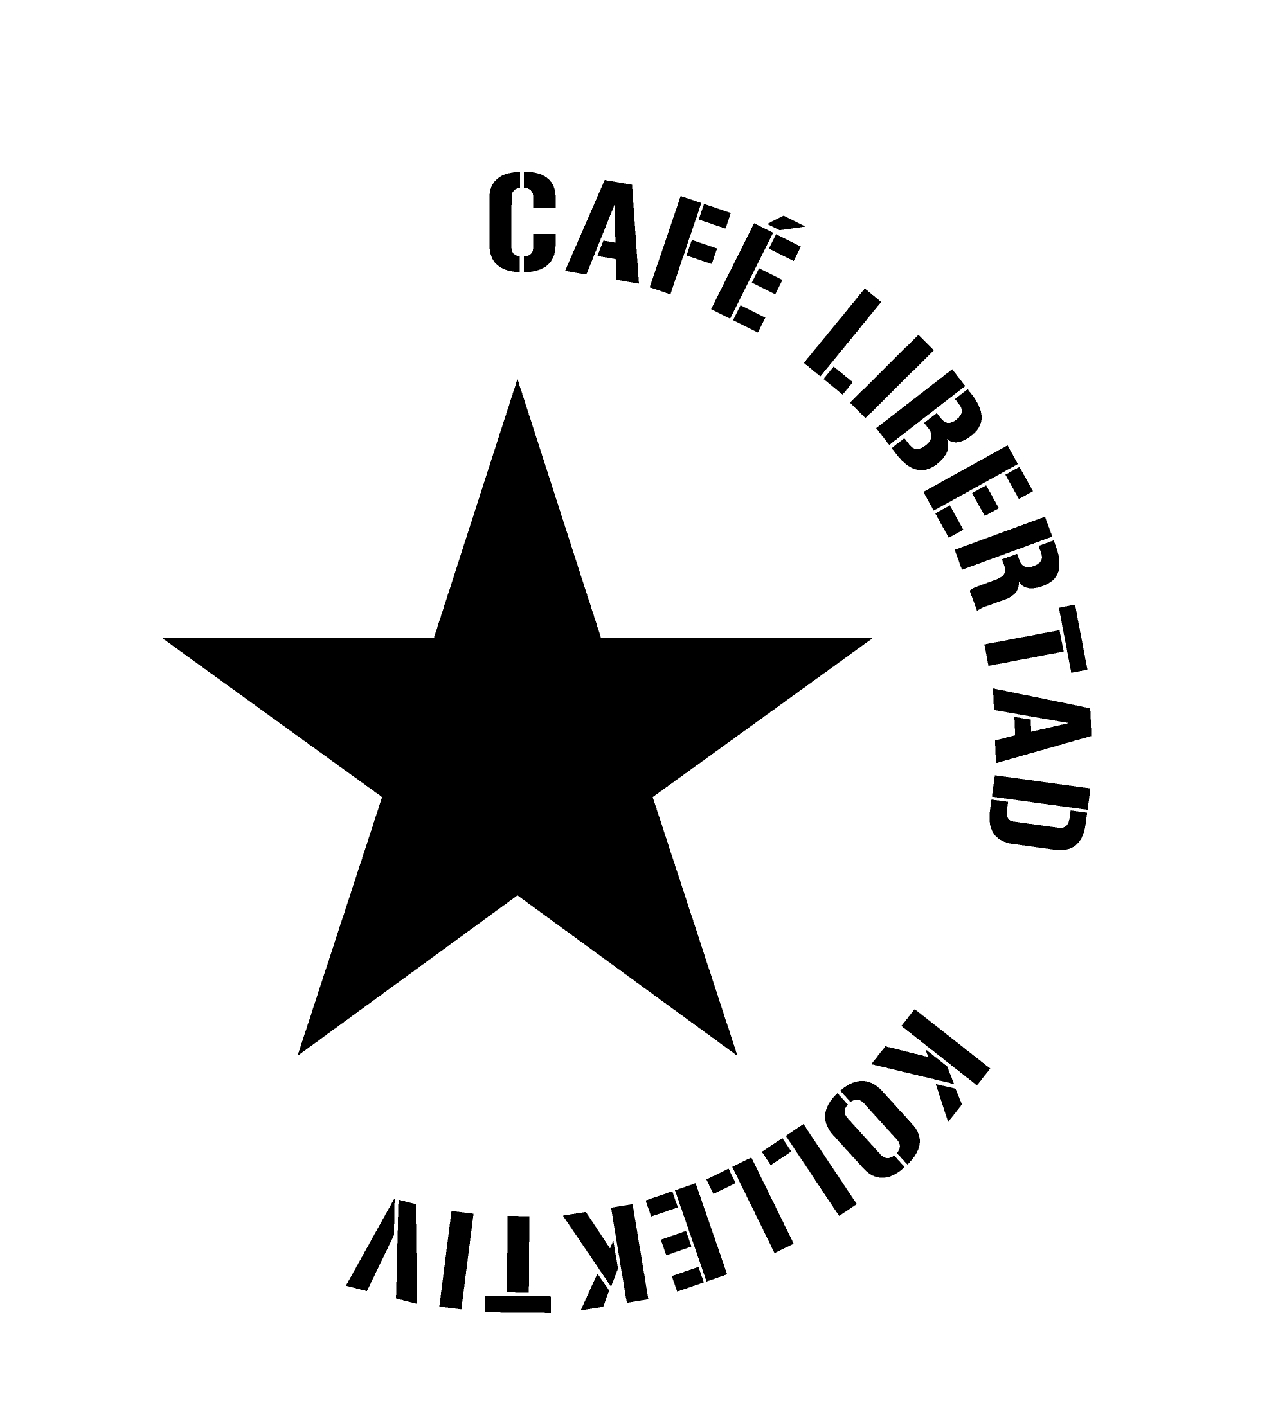 Link zu https://www.cafe-libertad.de/